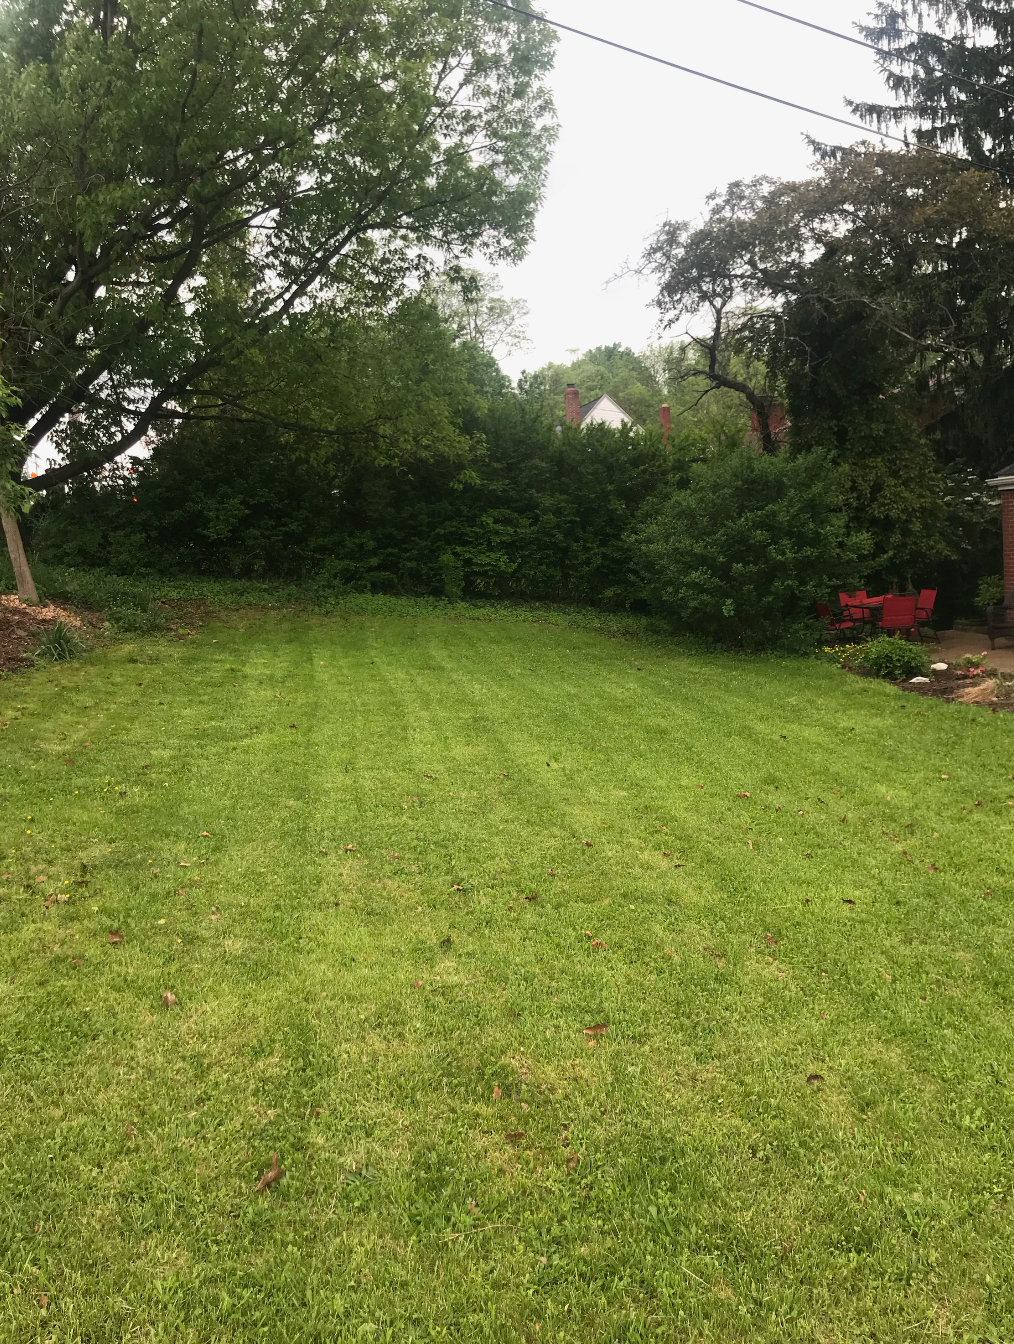 Lawn Care Service in Munhall, PA, 15120